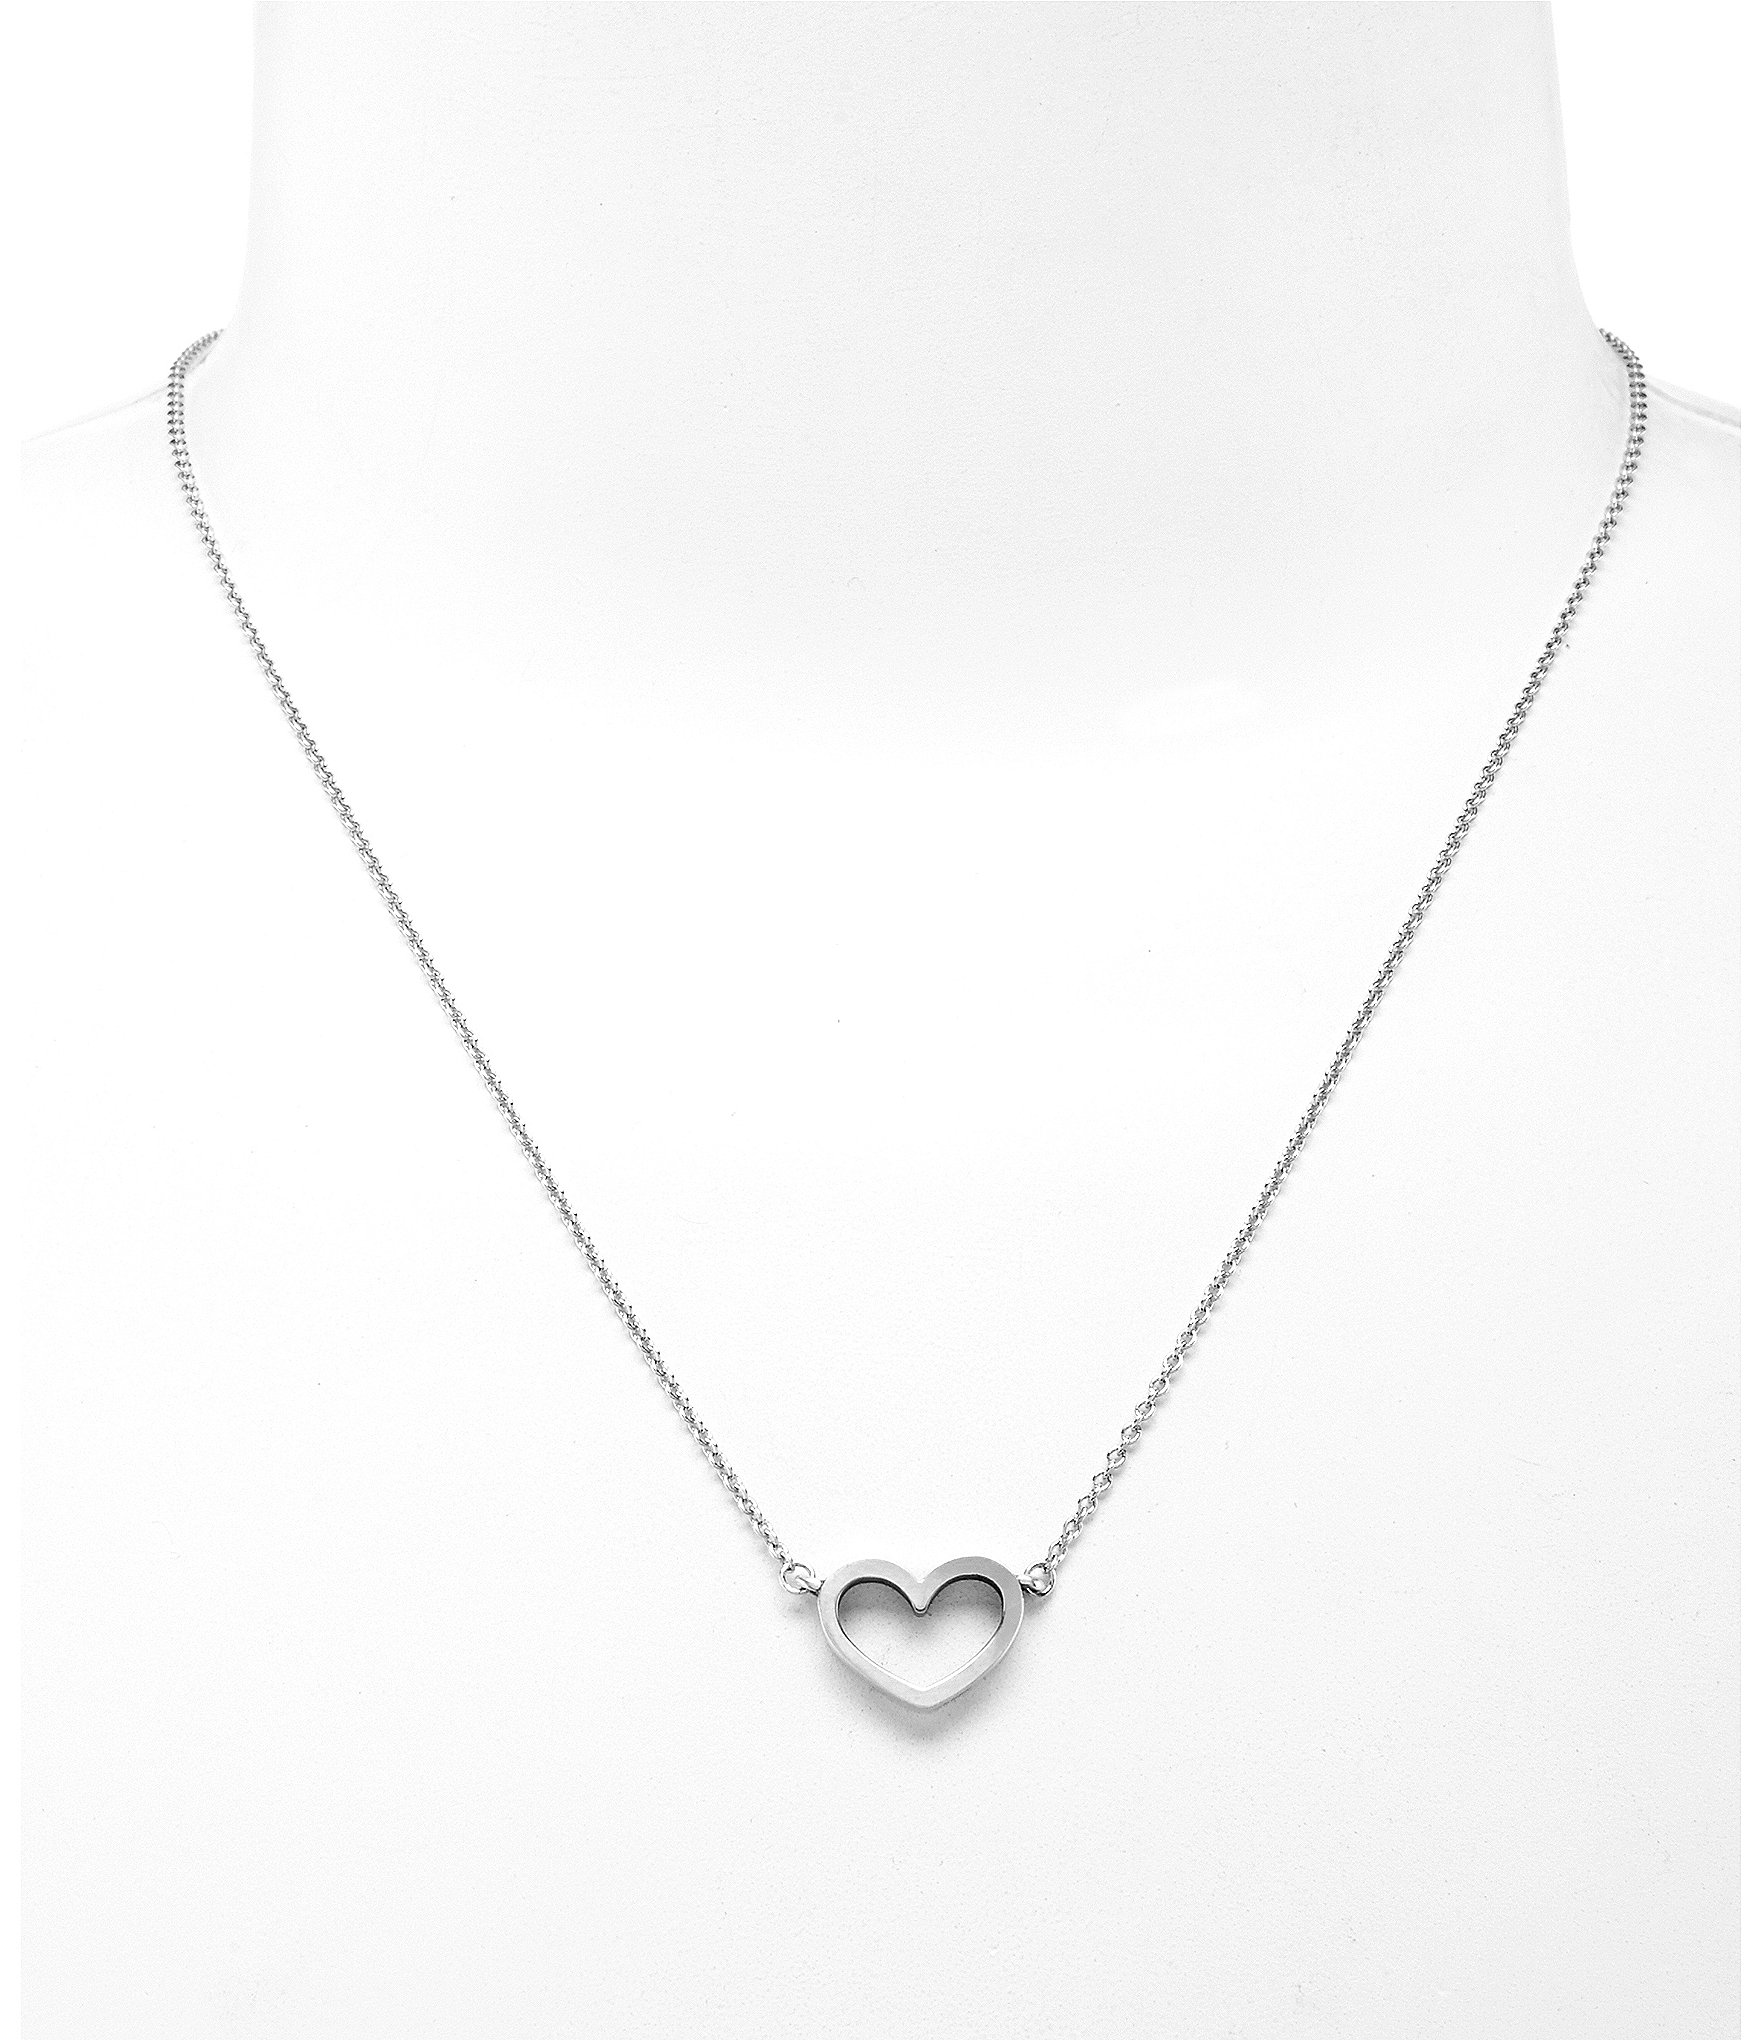 Womens sterling silver necklaces dillards aloadofball Gallery